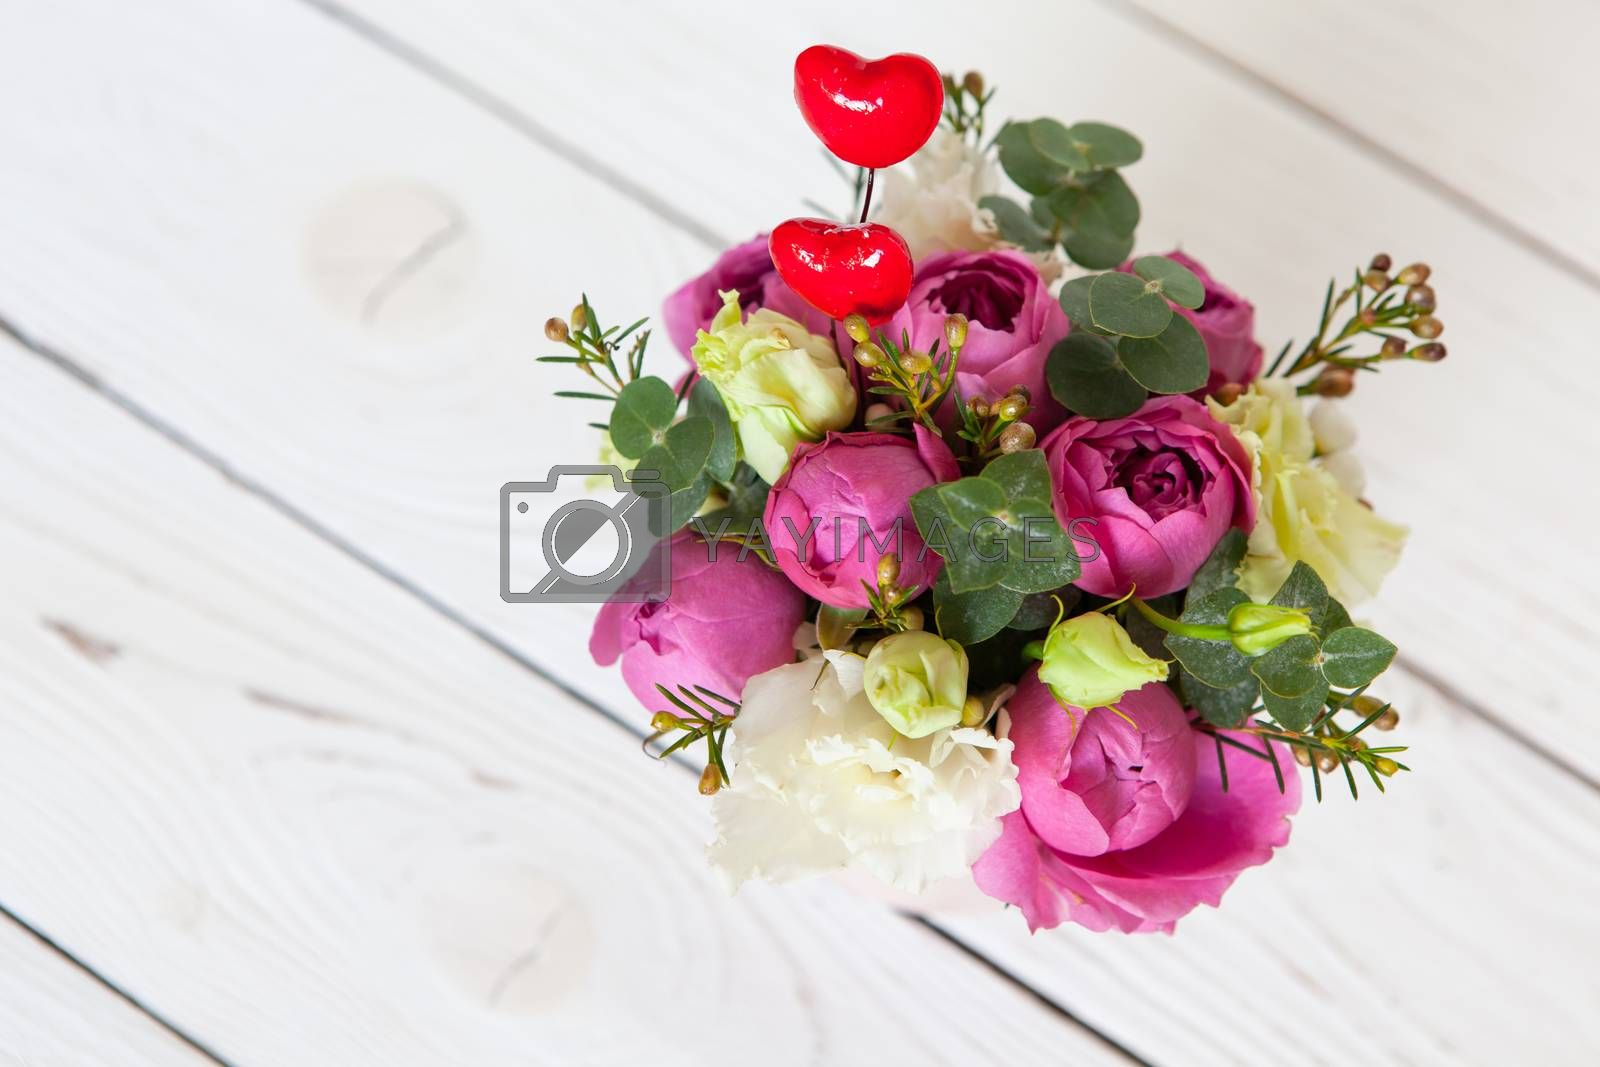 Creative flower bouquet on white wooden background. Focus on flowers, background is blurred. Copy space. For greeting card, social media, flower delivery, Mother's day, Women's Day